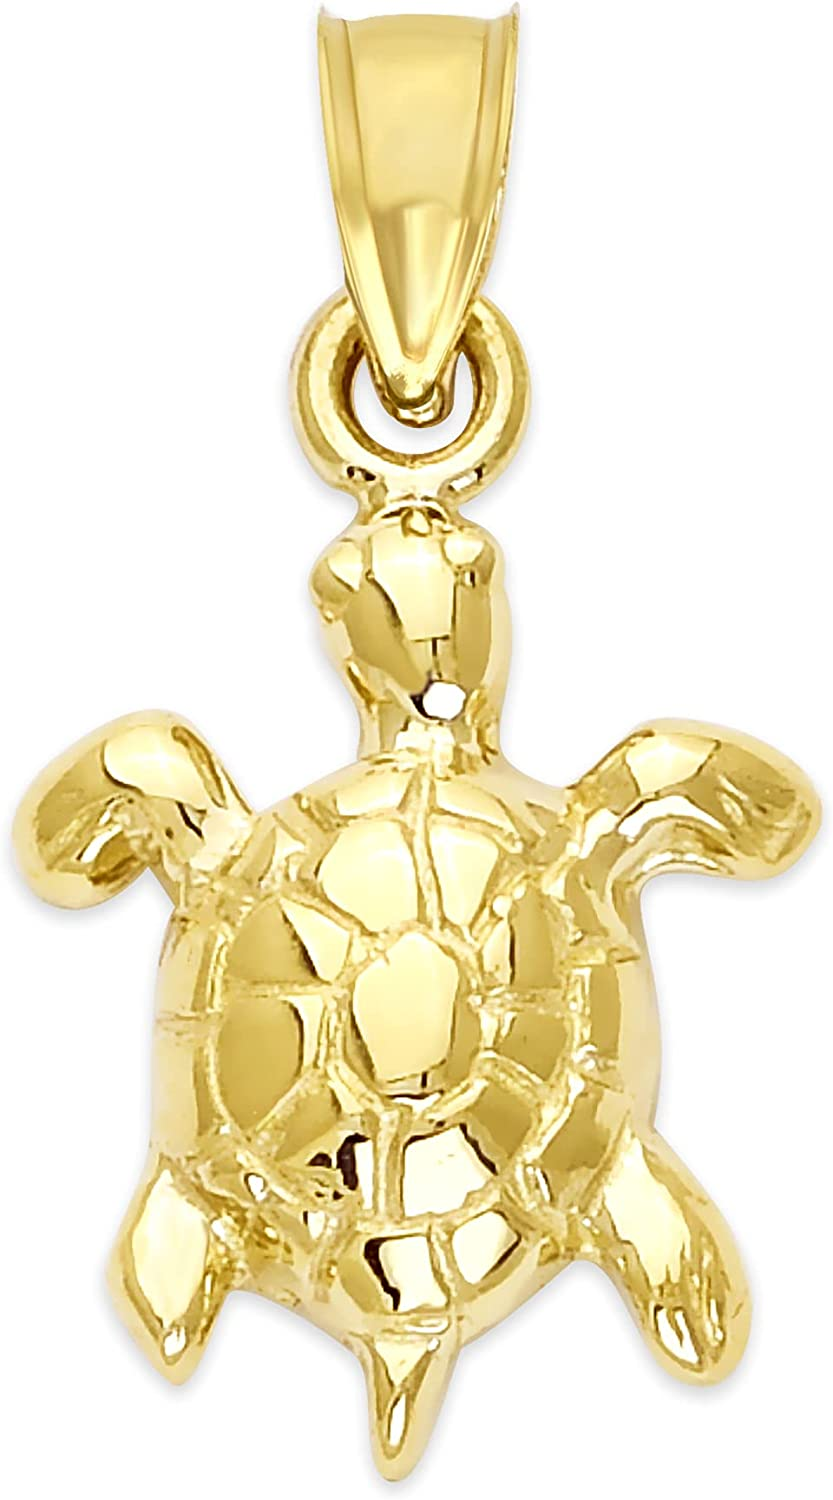 10k Dainty Solid Gold Sea Turtle Pendant, Marine Animal Jewelry Gifts for Her